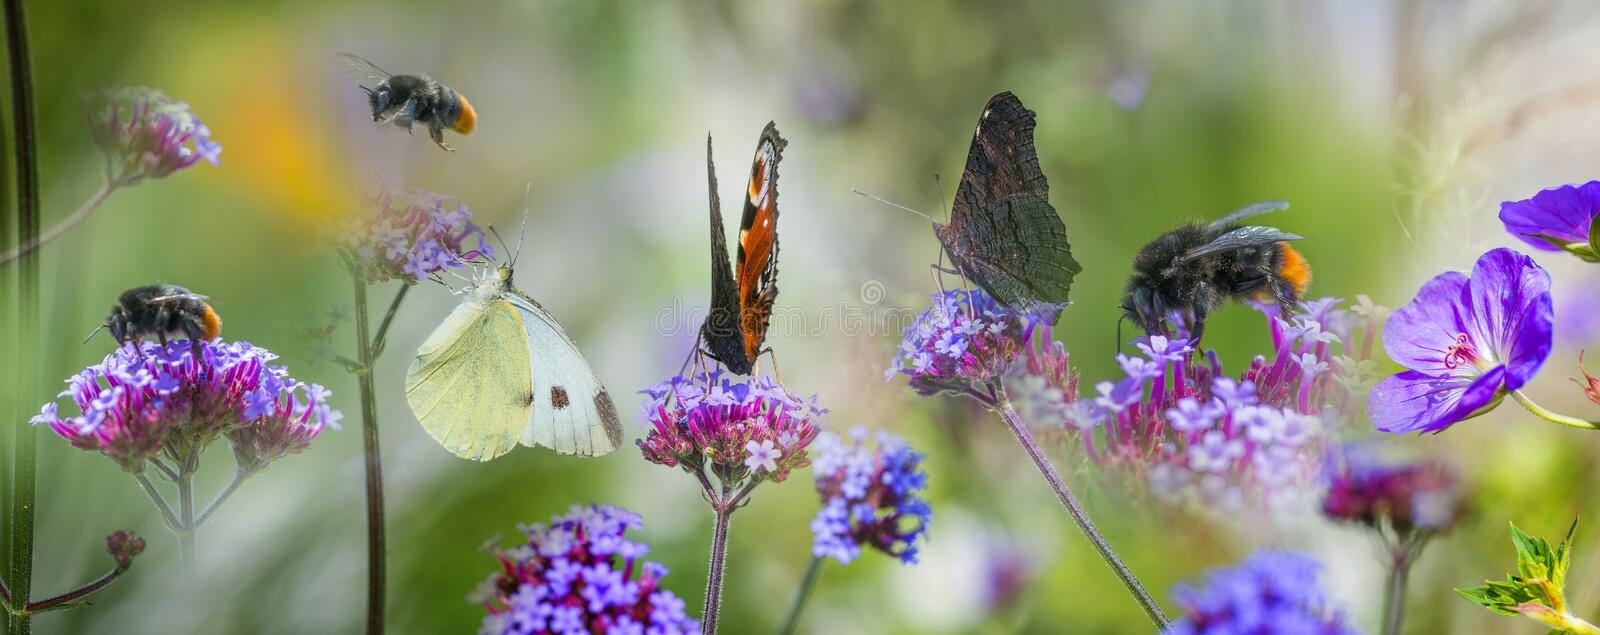 Butterflies and bumblebees on garden flowers. Summer view stock photography